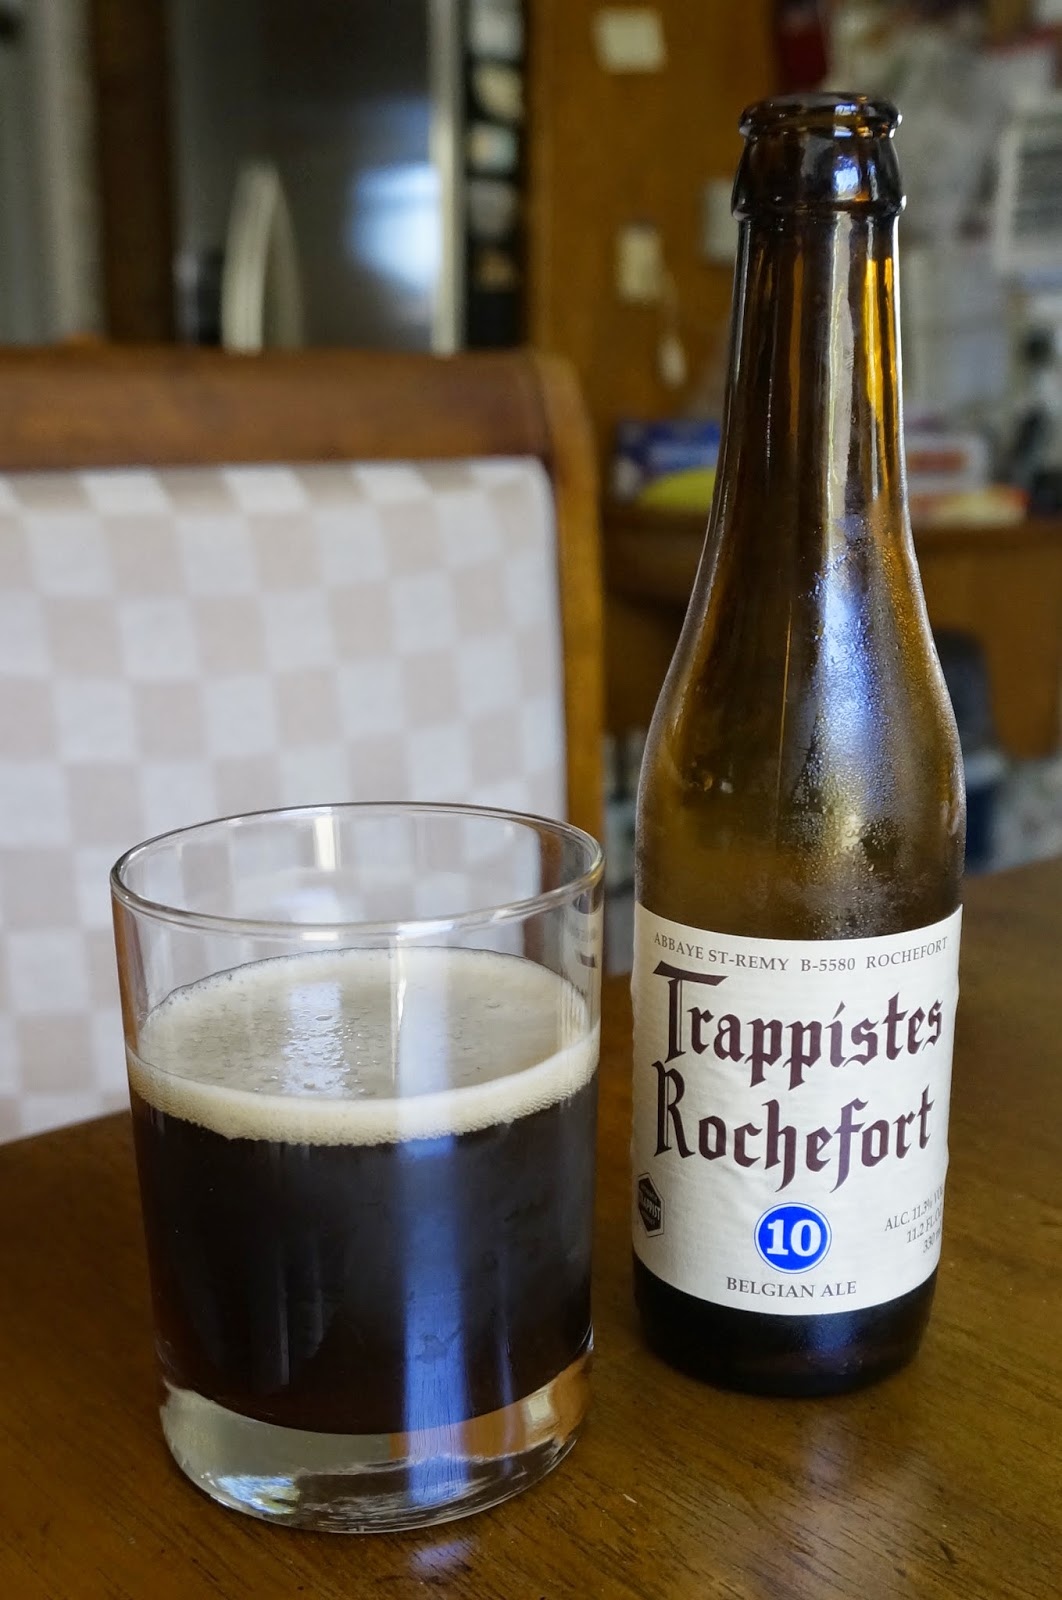 1c2c8fbade16 Prior to drinking this Rochefort Trappistes 10